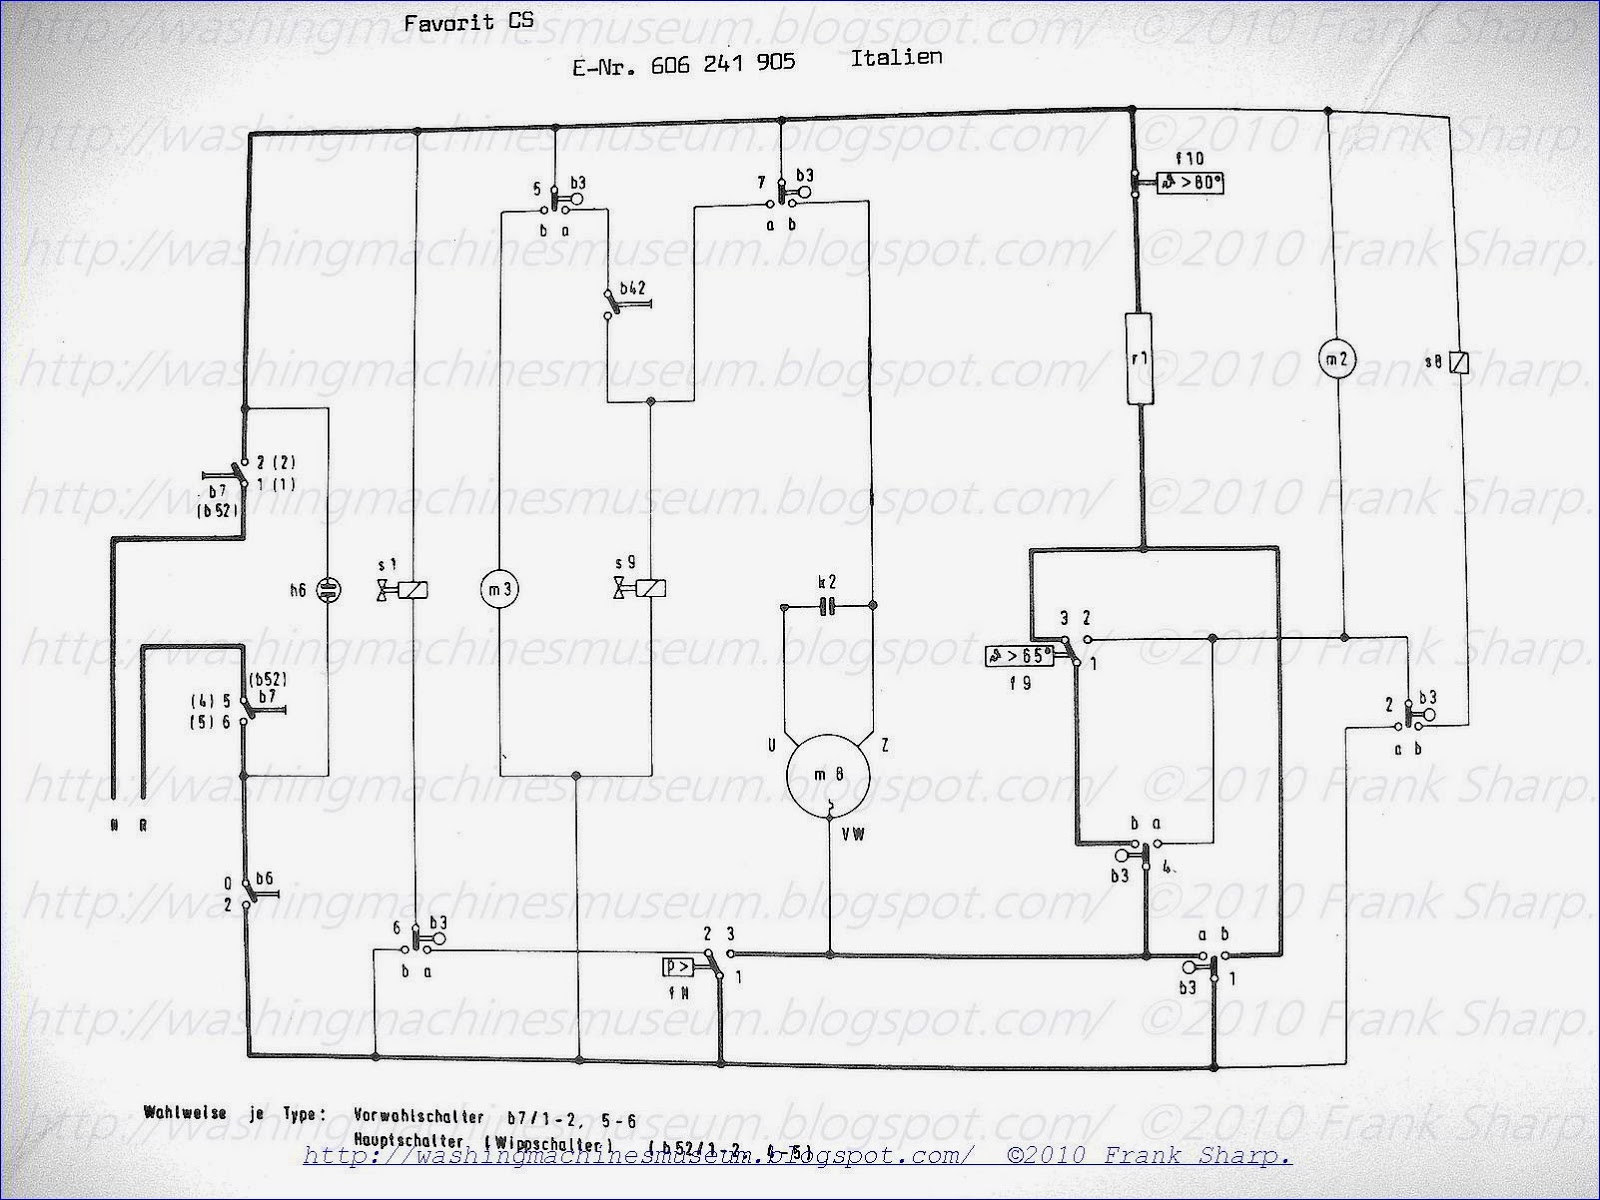 wiring diagram of sharp washing machine with Aeg Favorit Cs Italien Schematic Diagram on Kenmore Wine Cooler Wiring Diagram likewise Fix Overflowing Washing Machine Water Overflow Repair additionally Water Line Schematics likewise Philips 40pfl3606 Lcd Tv Power Supply likewise Wiring Diagram For Refrigerator.